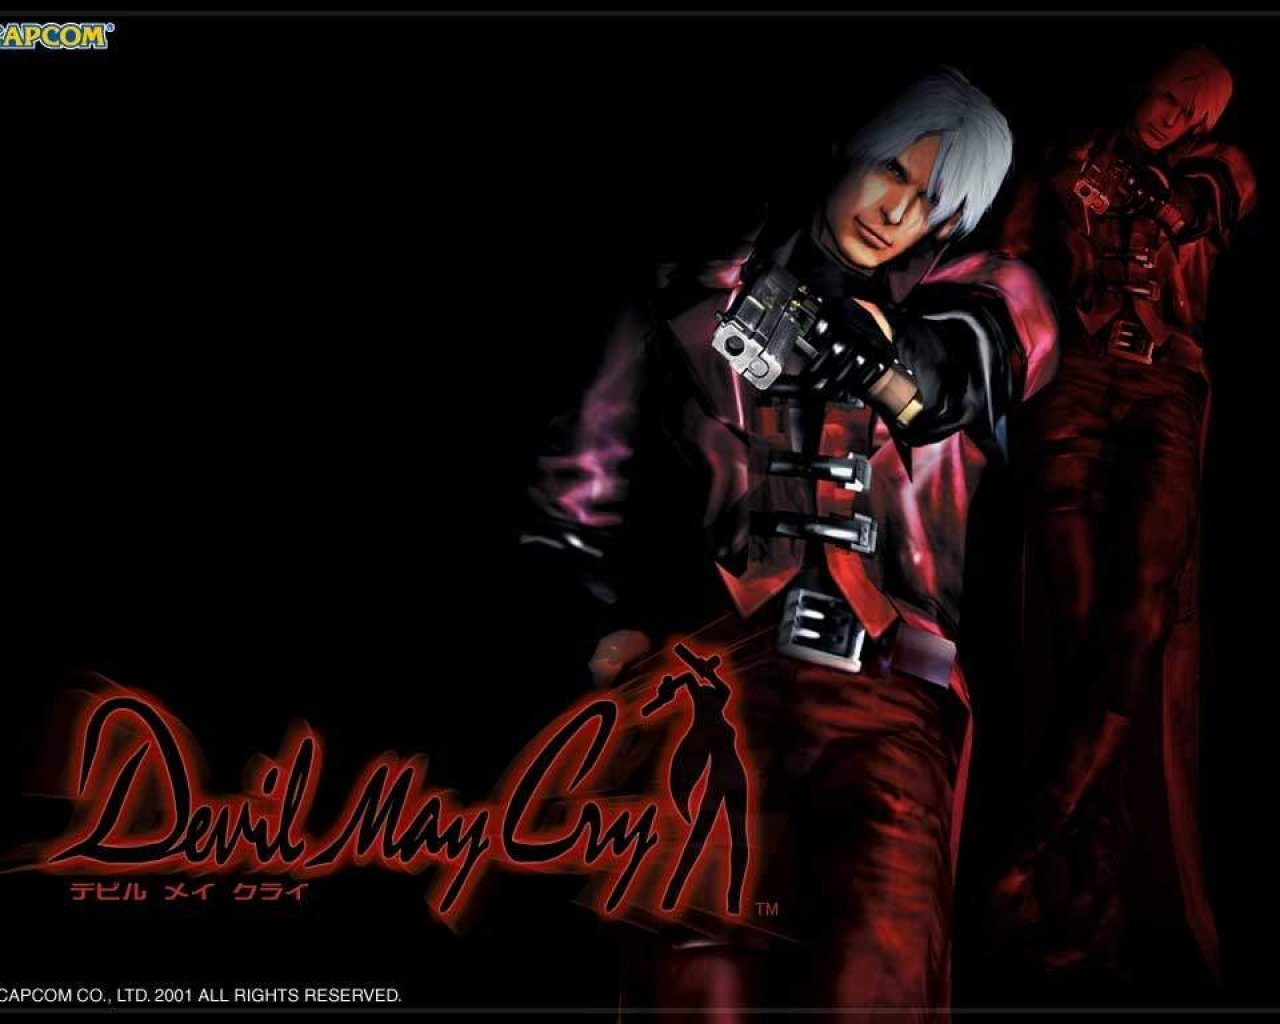 DMC HD Wallpapers Devil May Cry HD Pictures Devil May Cry Images 1280x1024